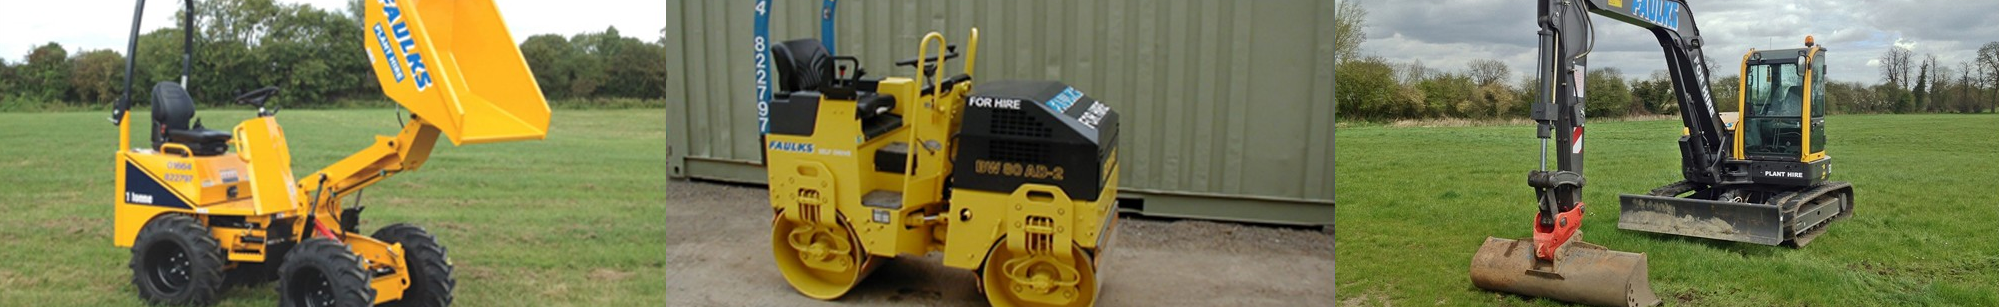 Vehicles on offer through our plant hire in Nottingham service